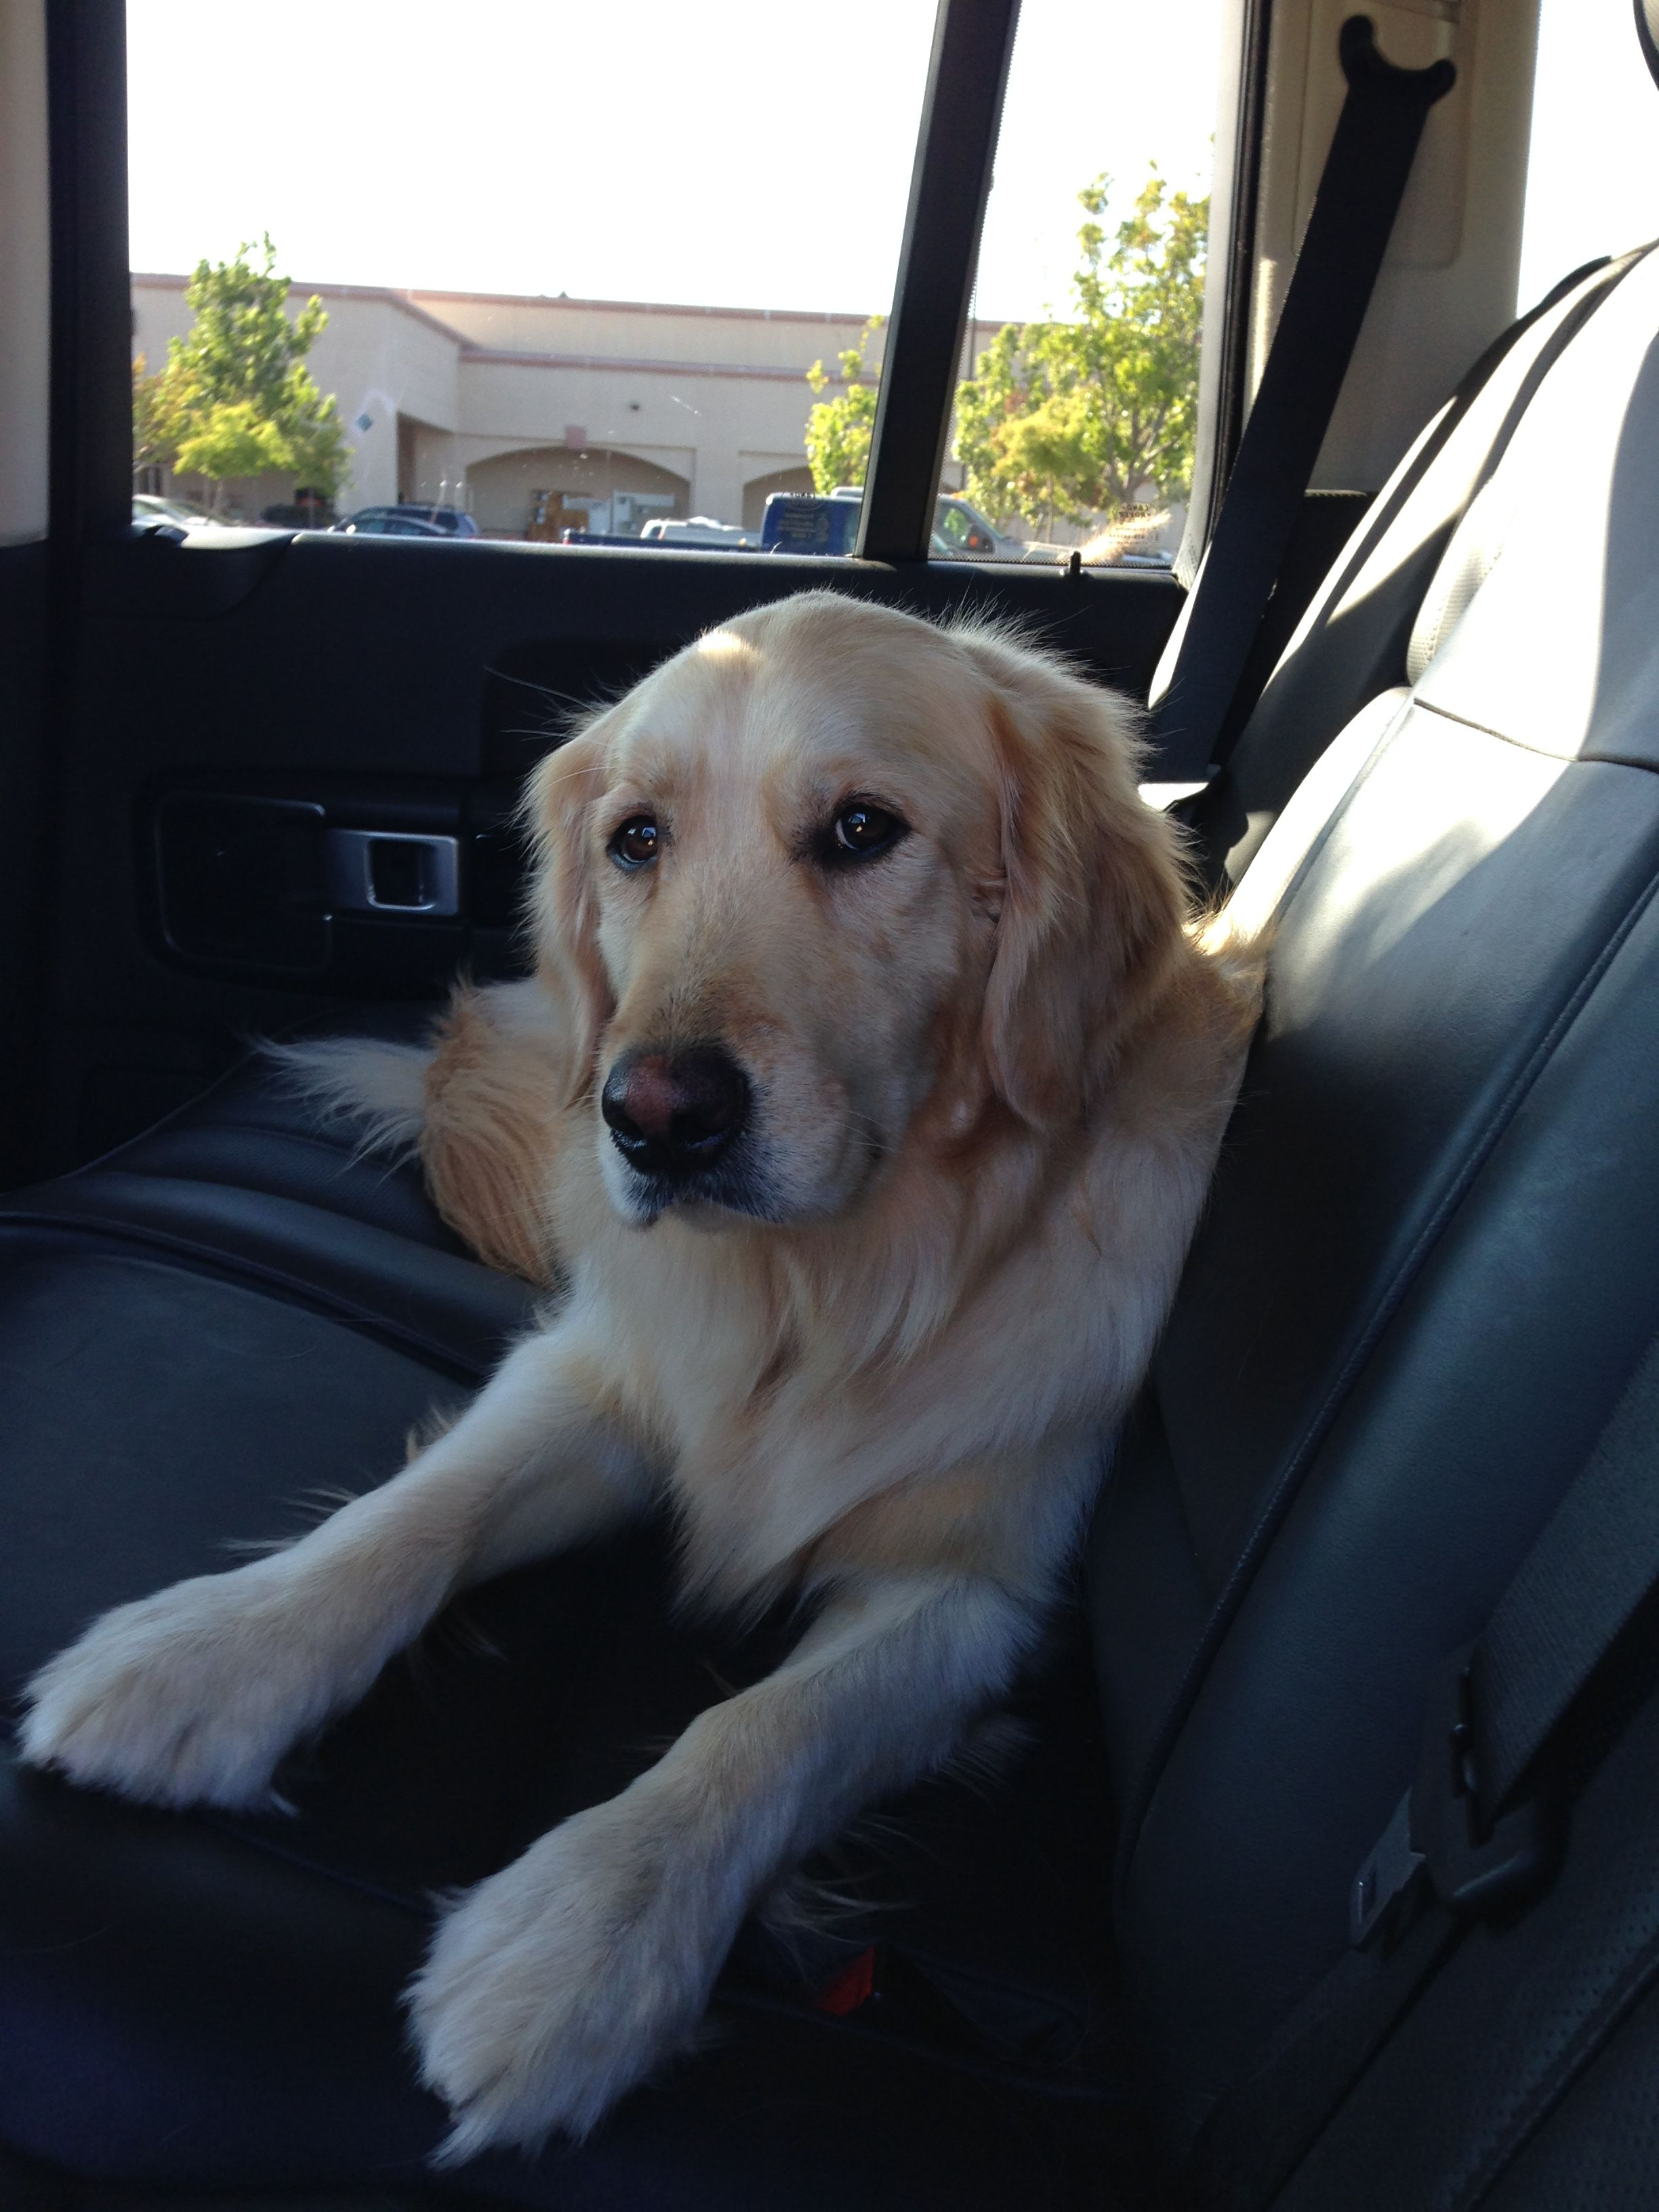 Pin By Mike On Golden Retriever My Now 4 Year Old Jackson All